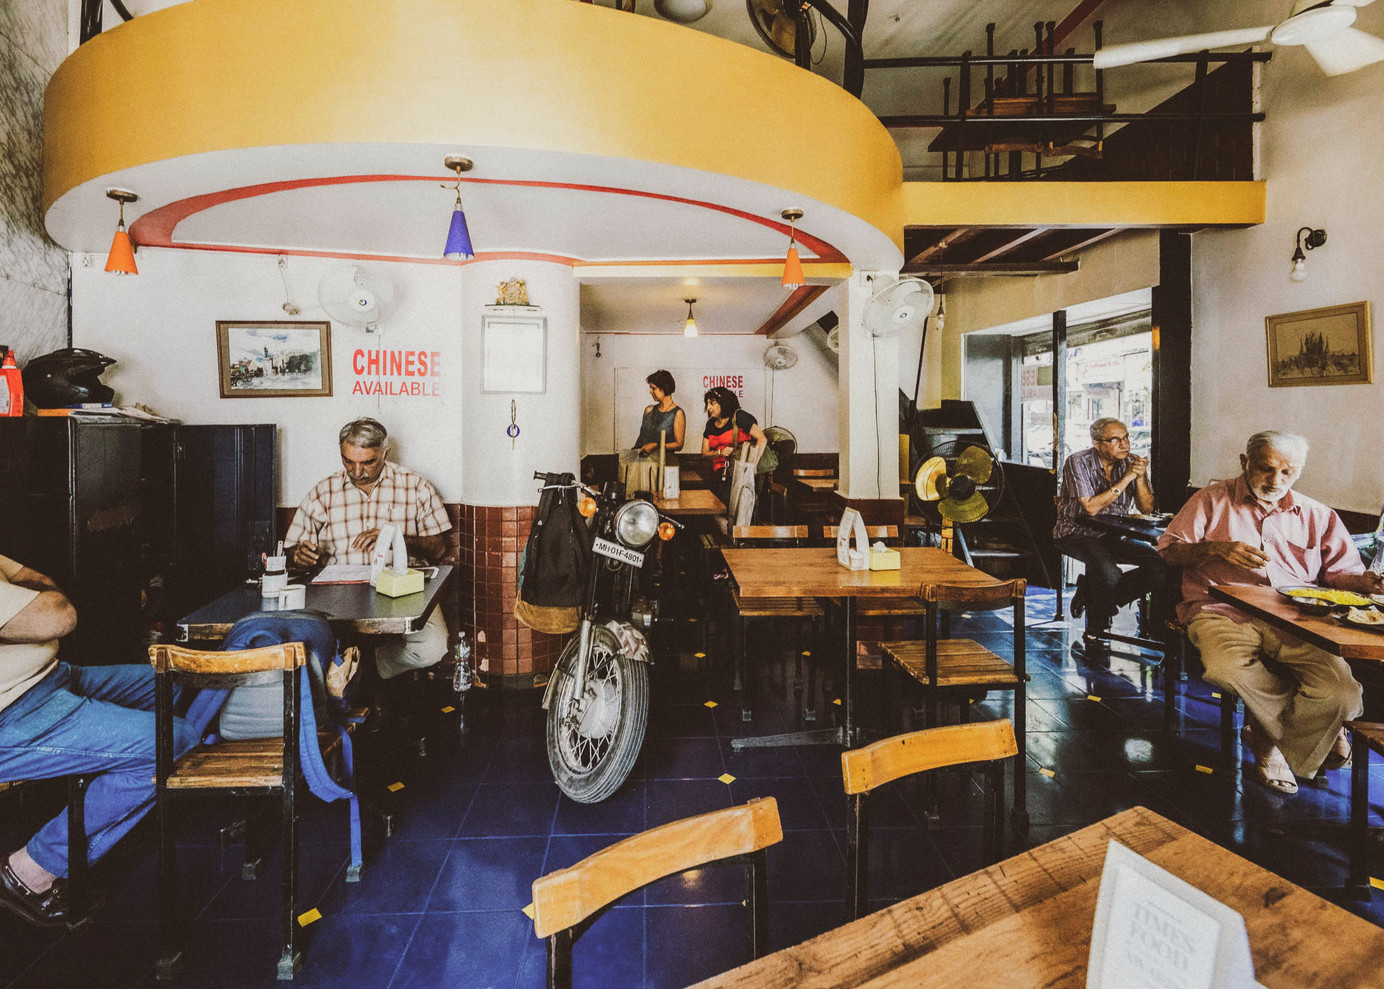 Interiors of Cafe Ideal Corner, named after the Mysore-based motorbike company Ideal Jawa India Pvt Ltd, whose shop was originally located at the very corner where the cafe stands today. The interior is resplendent with royal blue flooring with wooden stairs leading to a loft which is used only if the ground floor is packed with customers.